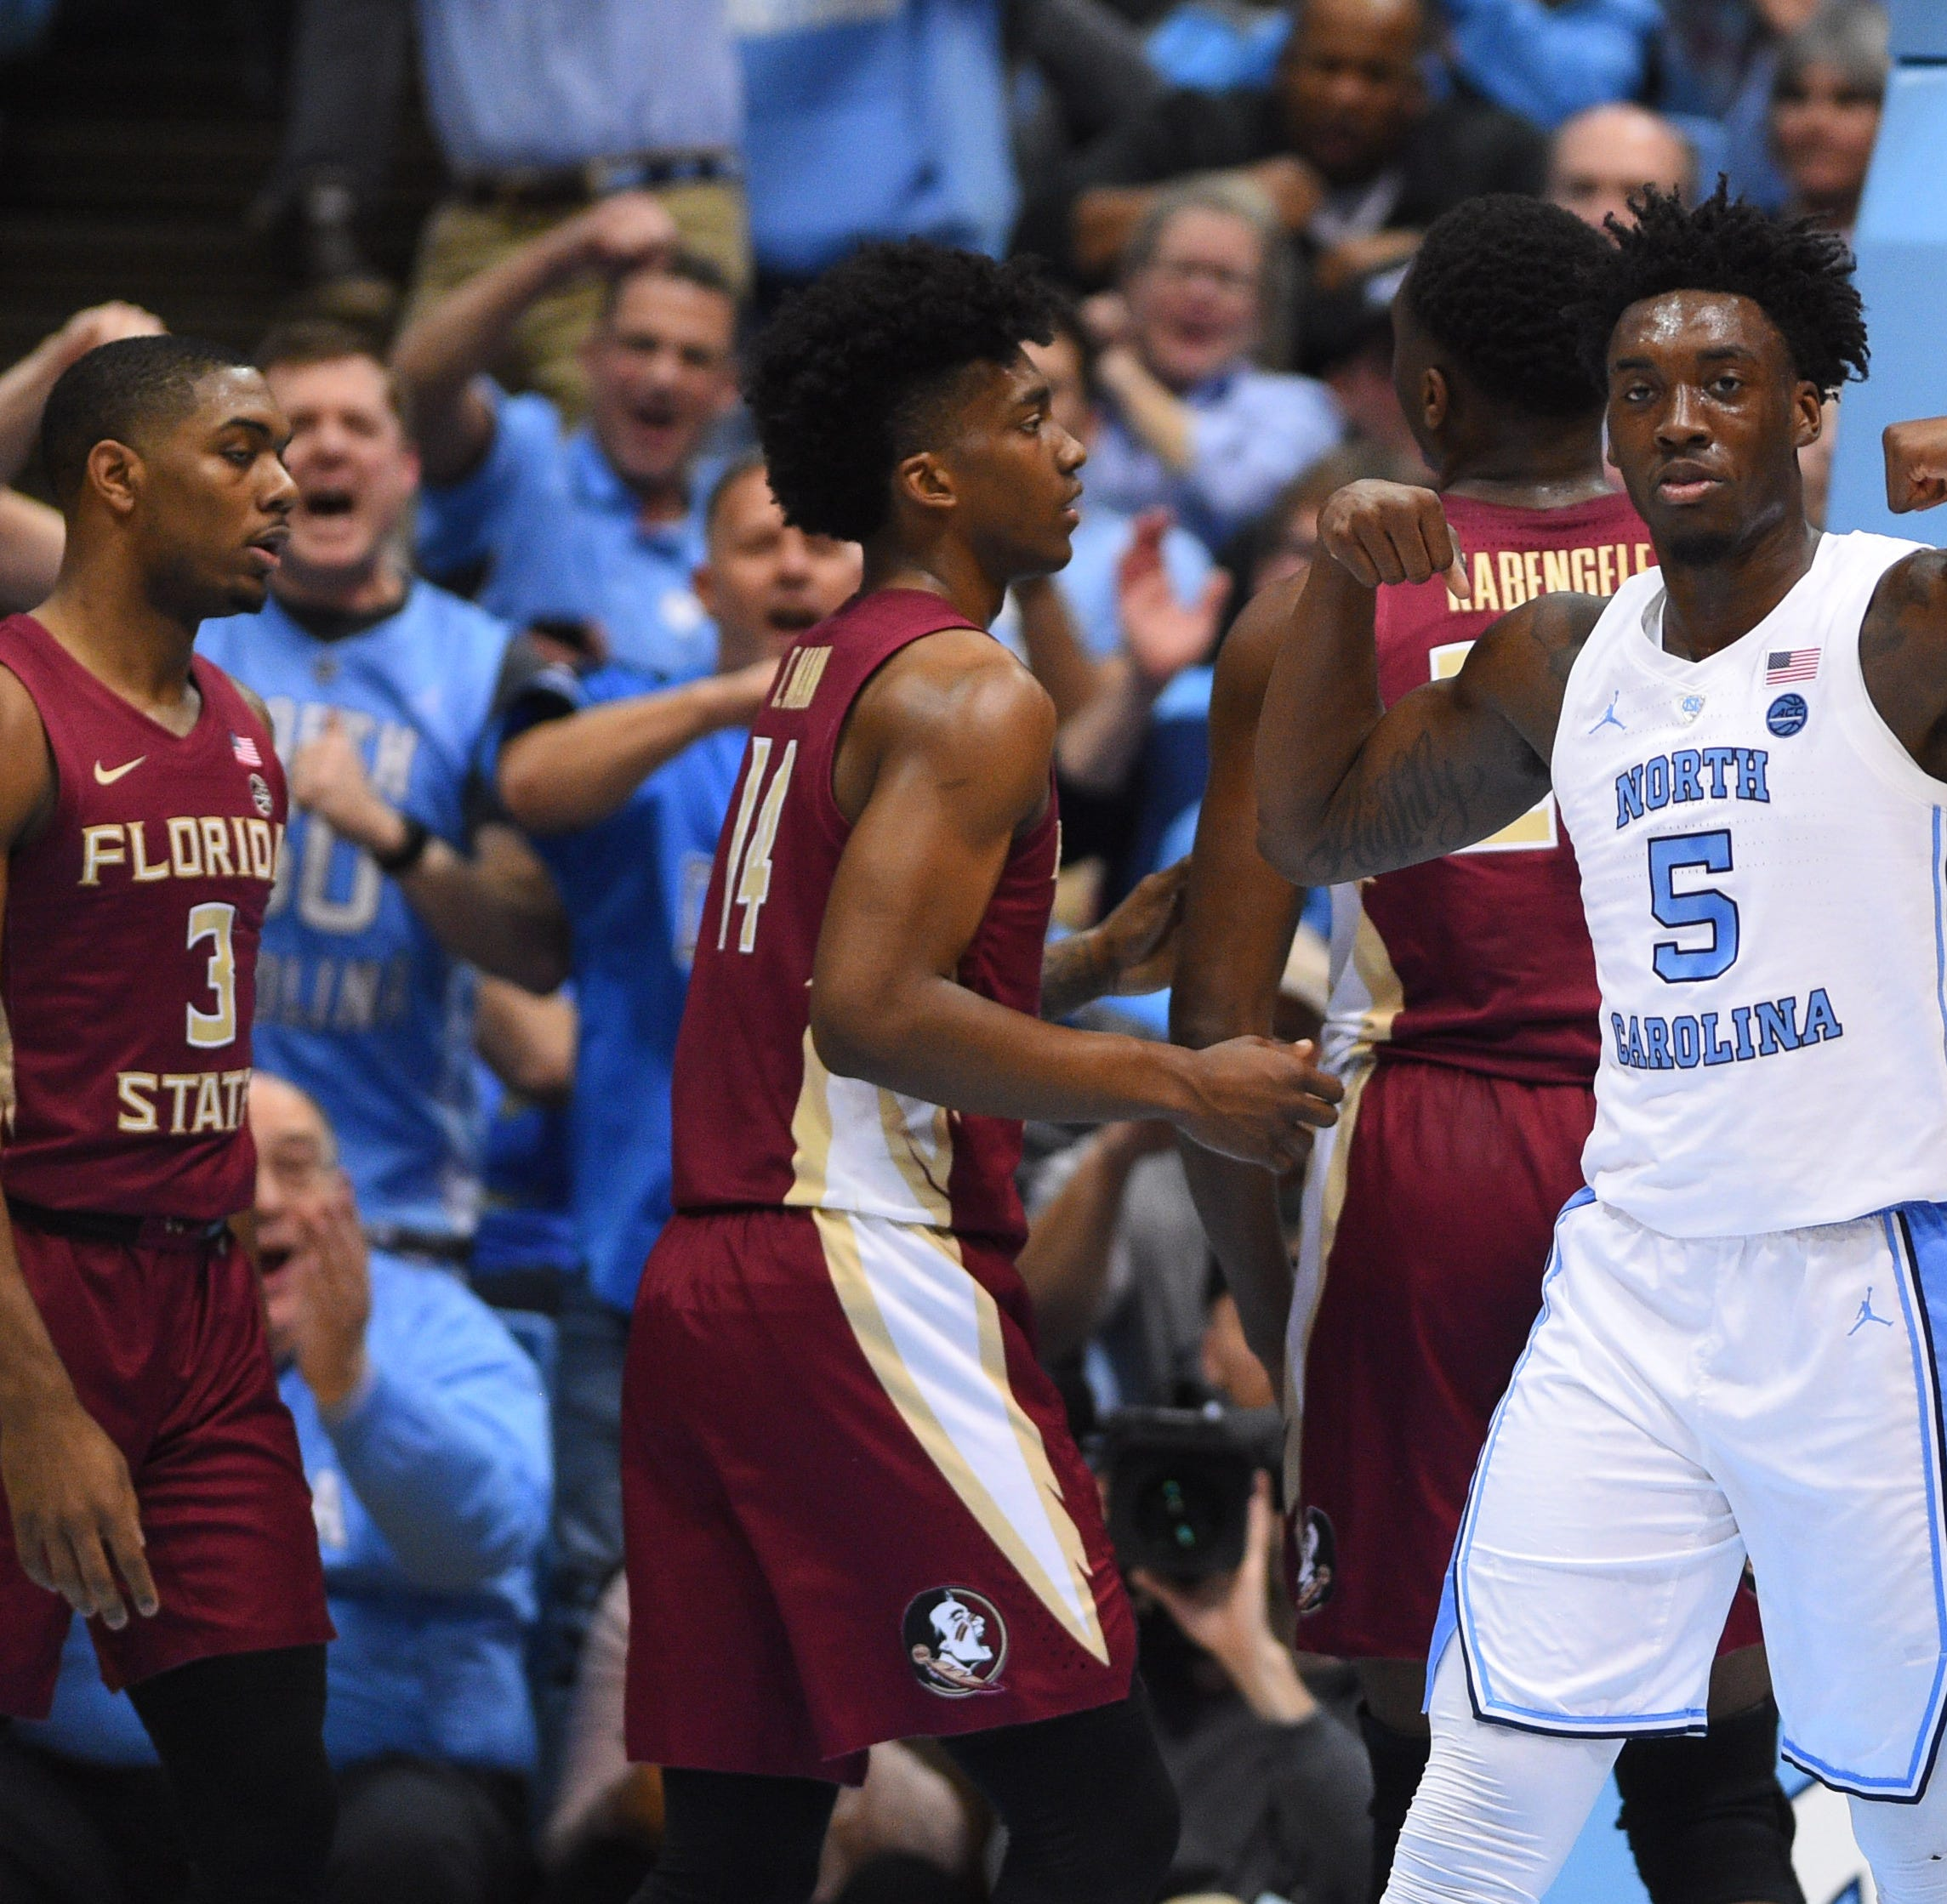 Florida State's winning streak ends with blowout loss to North Carolina